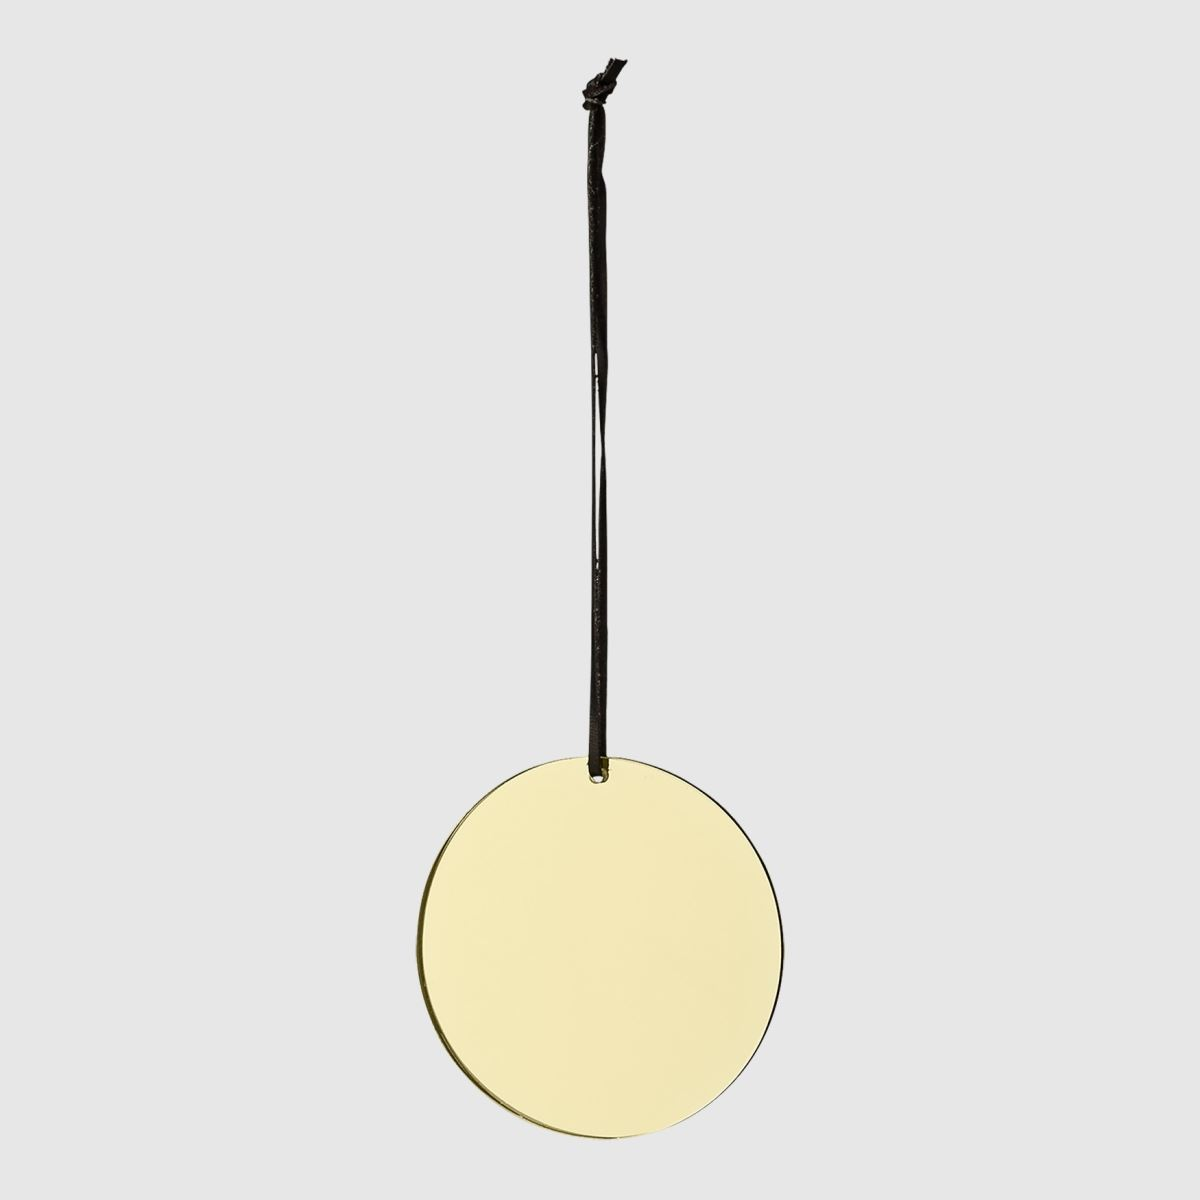 Gold mirror ornament from AYTM